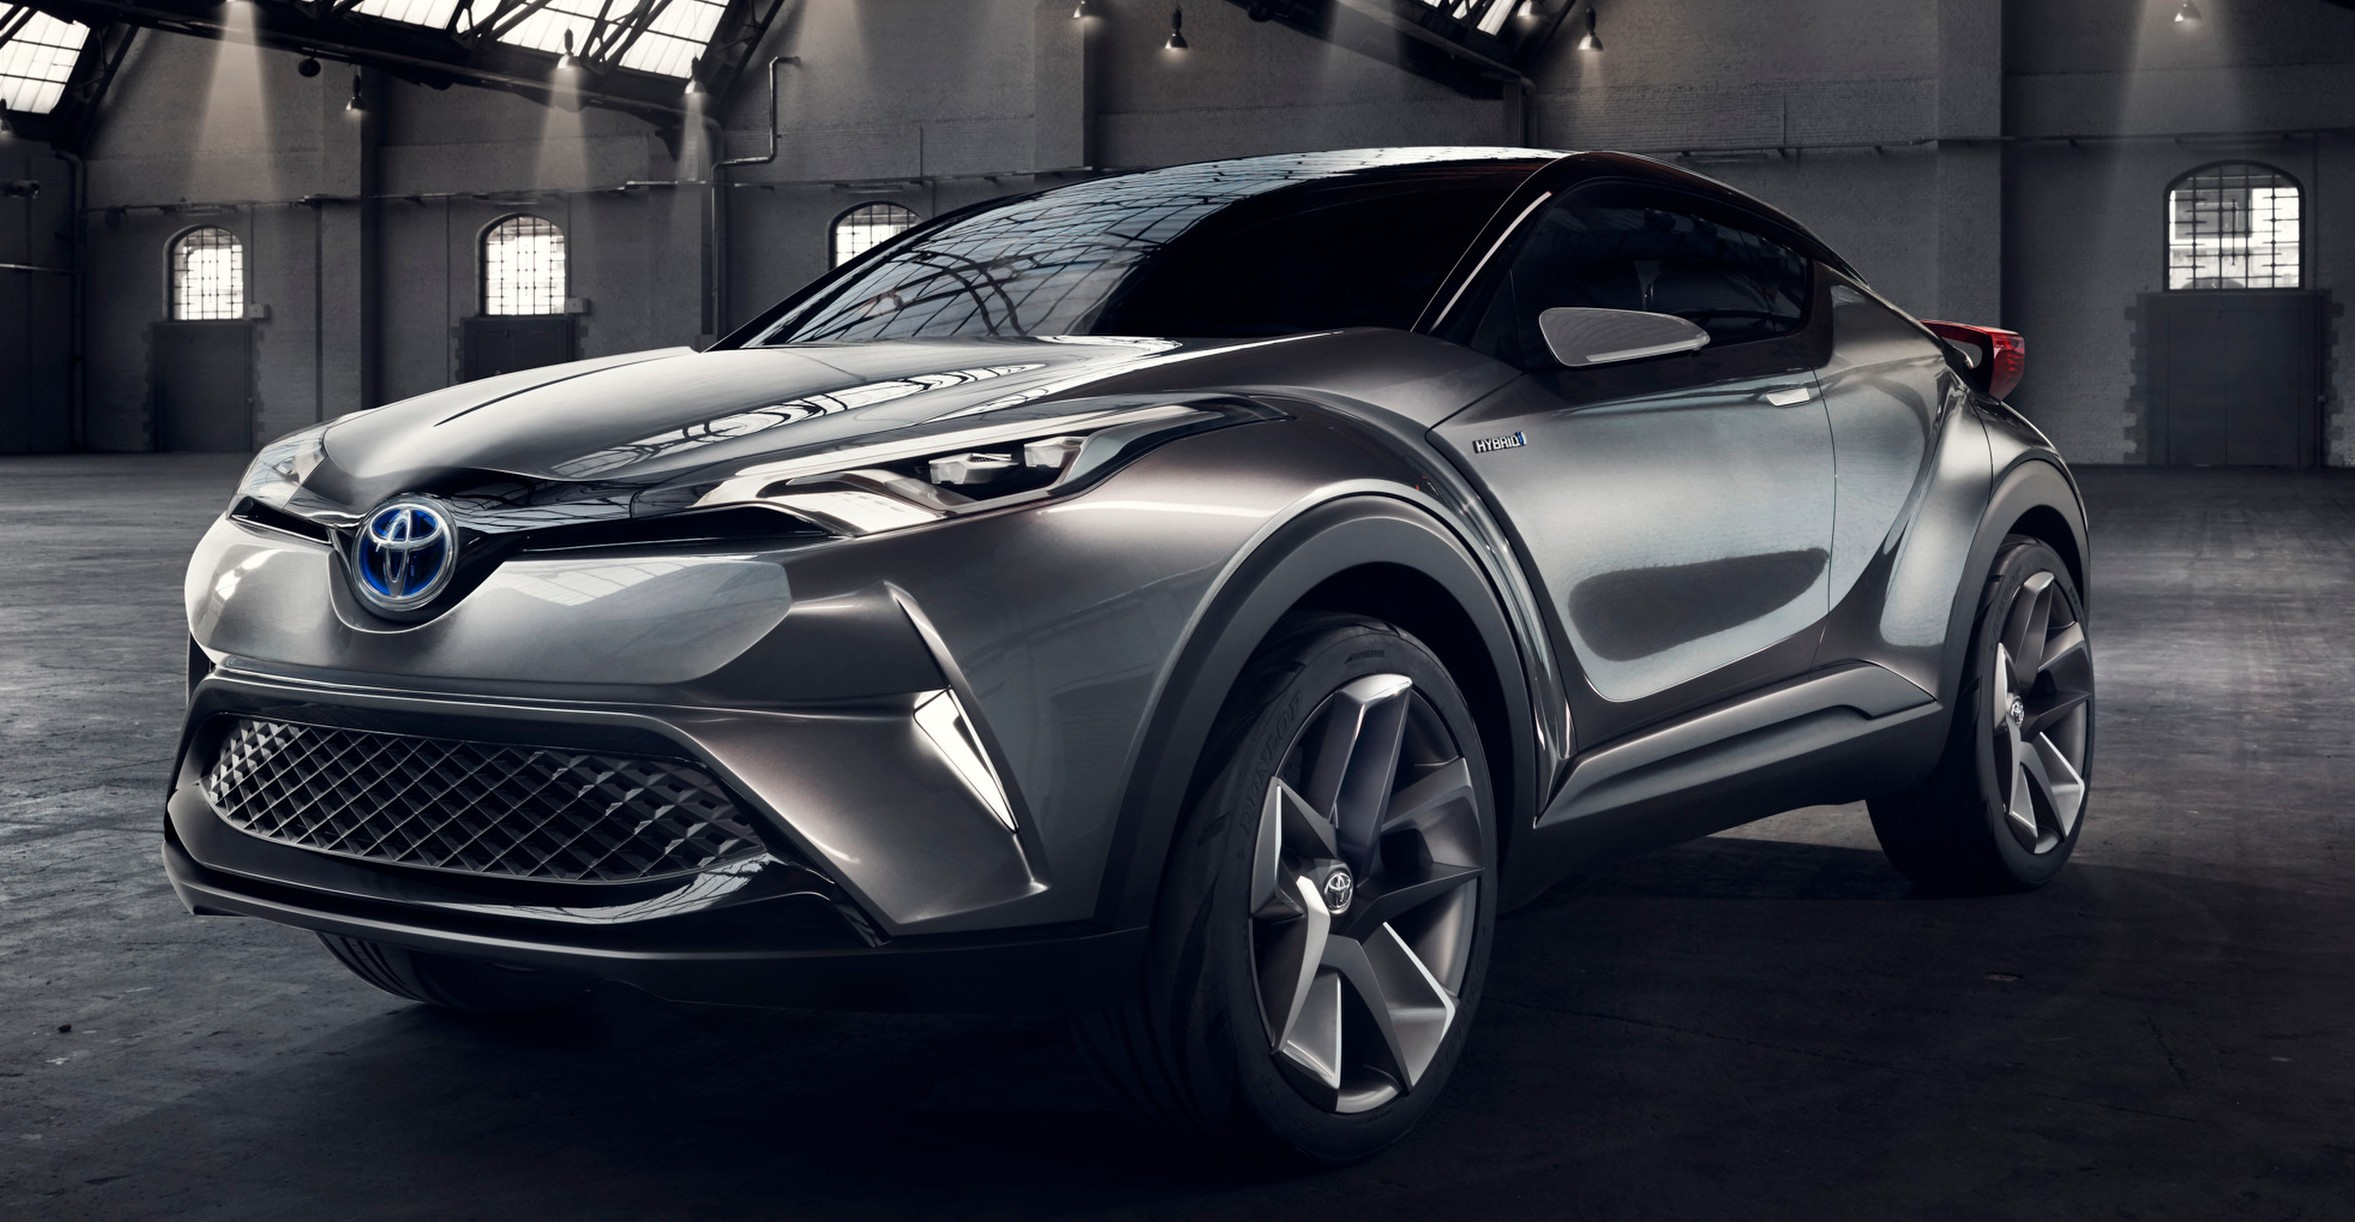 frankfurt 2015 toyota c hr concept now with five doors production suv to debut at geneva 2016. Black Bedroom Furniture Sets. Home Design Ideas